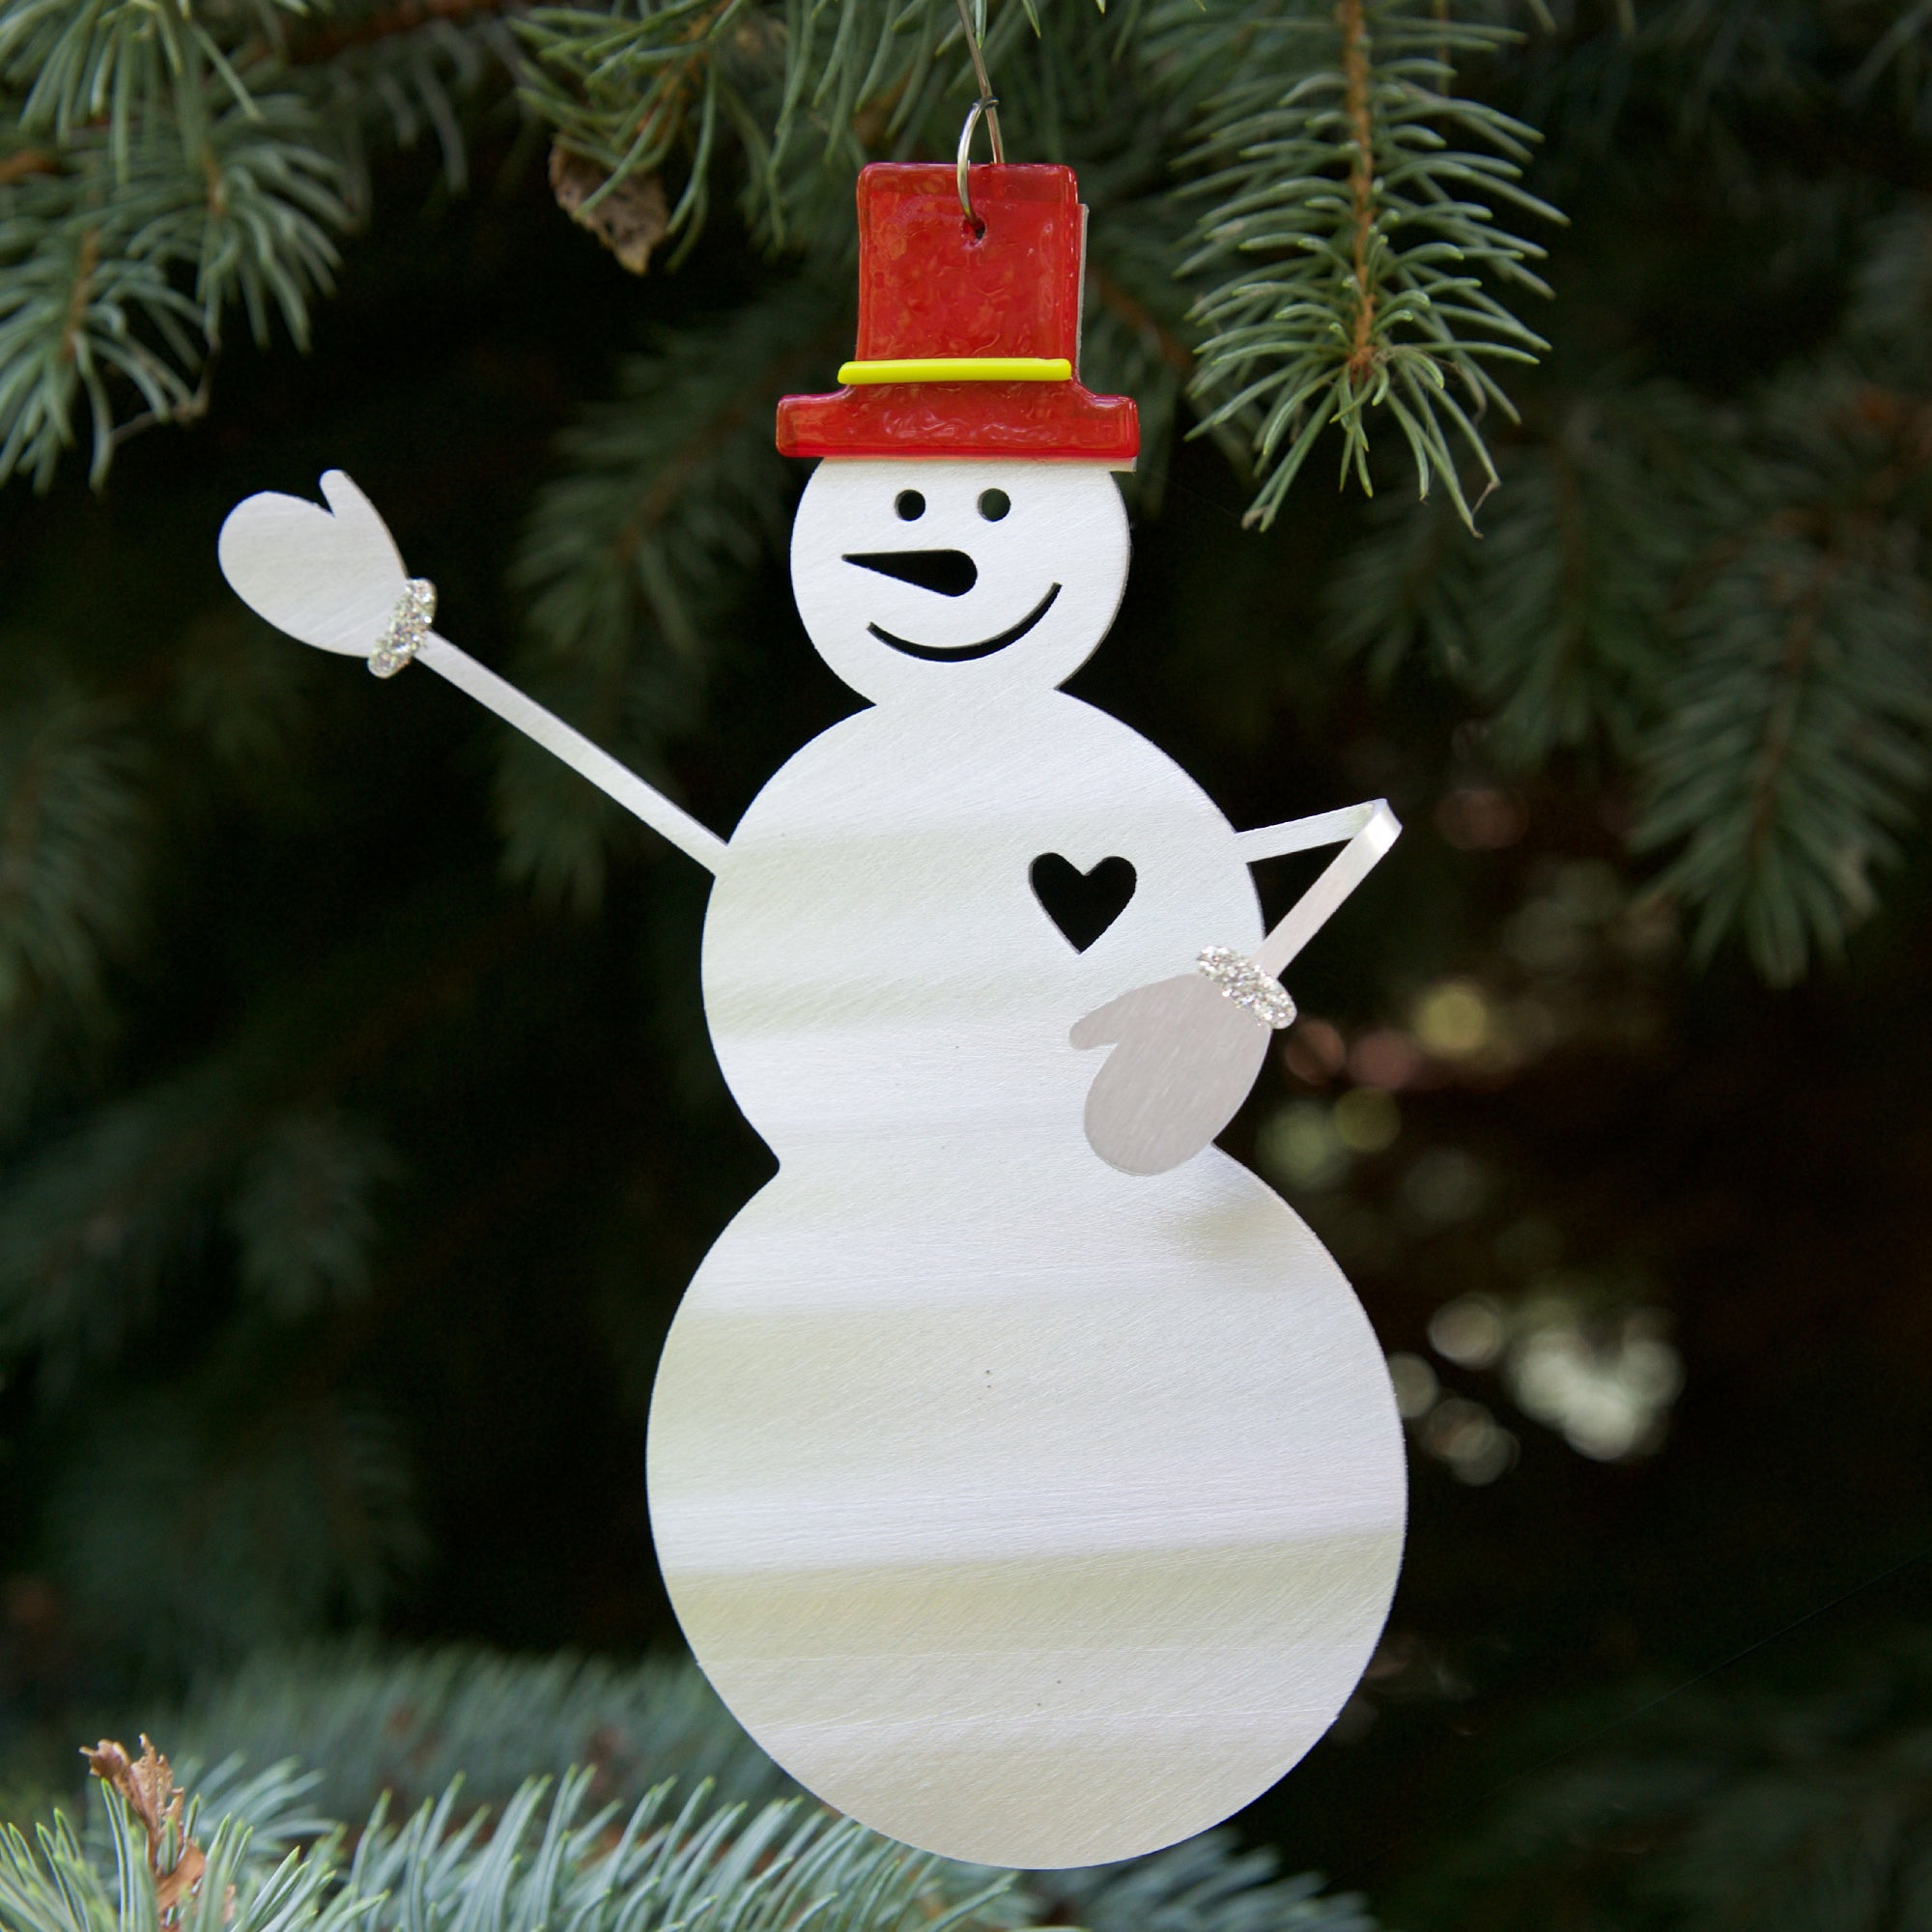 Smiling Snowman Ornament - by Sondra Gerber - ©2019 Metal Petal Art